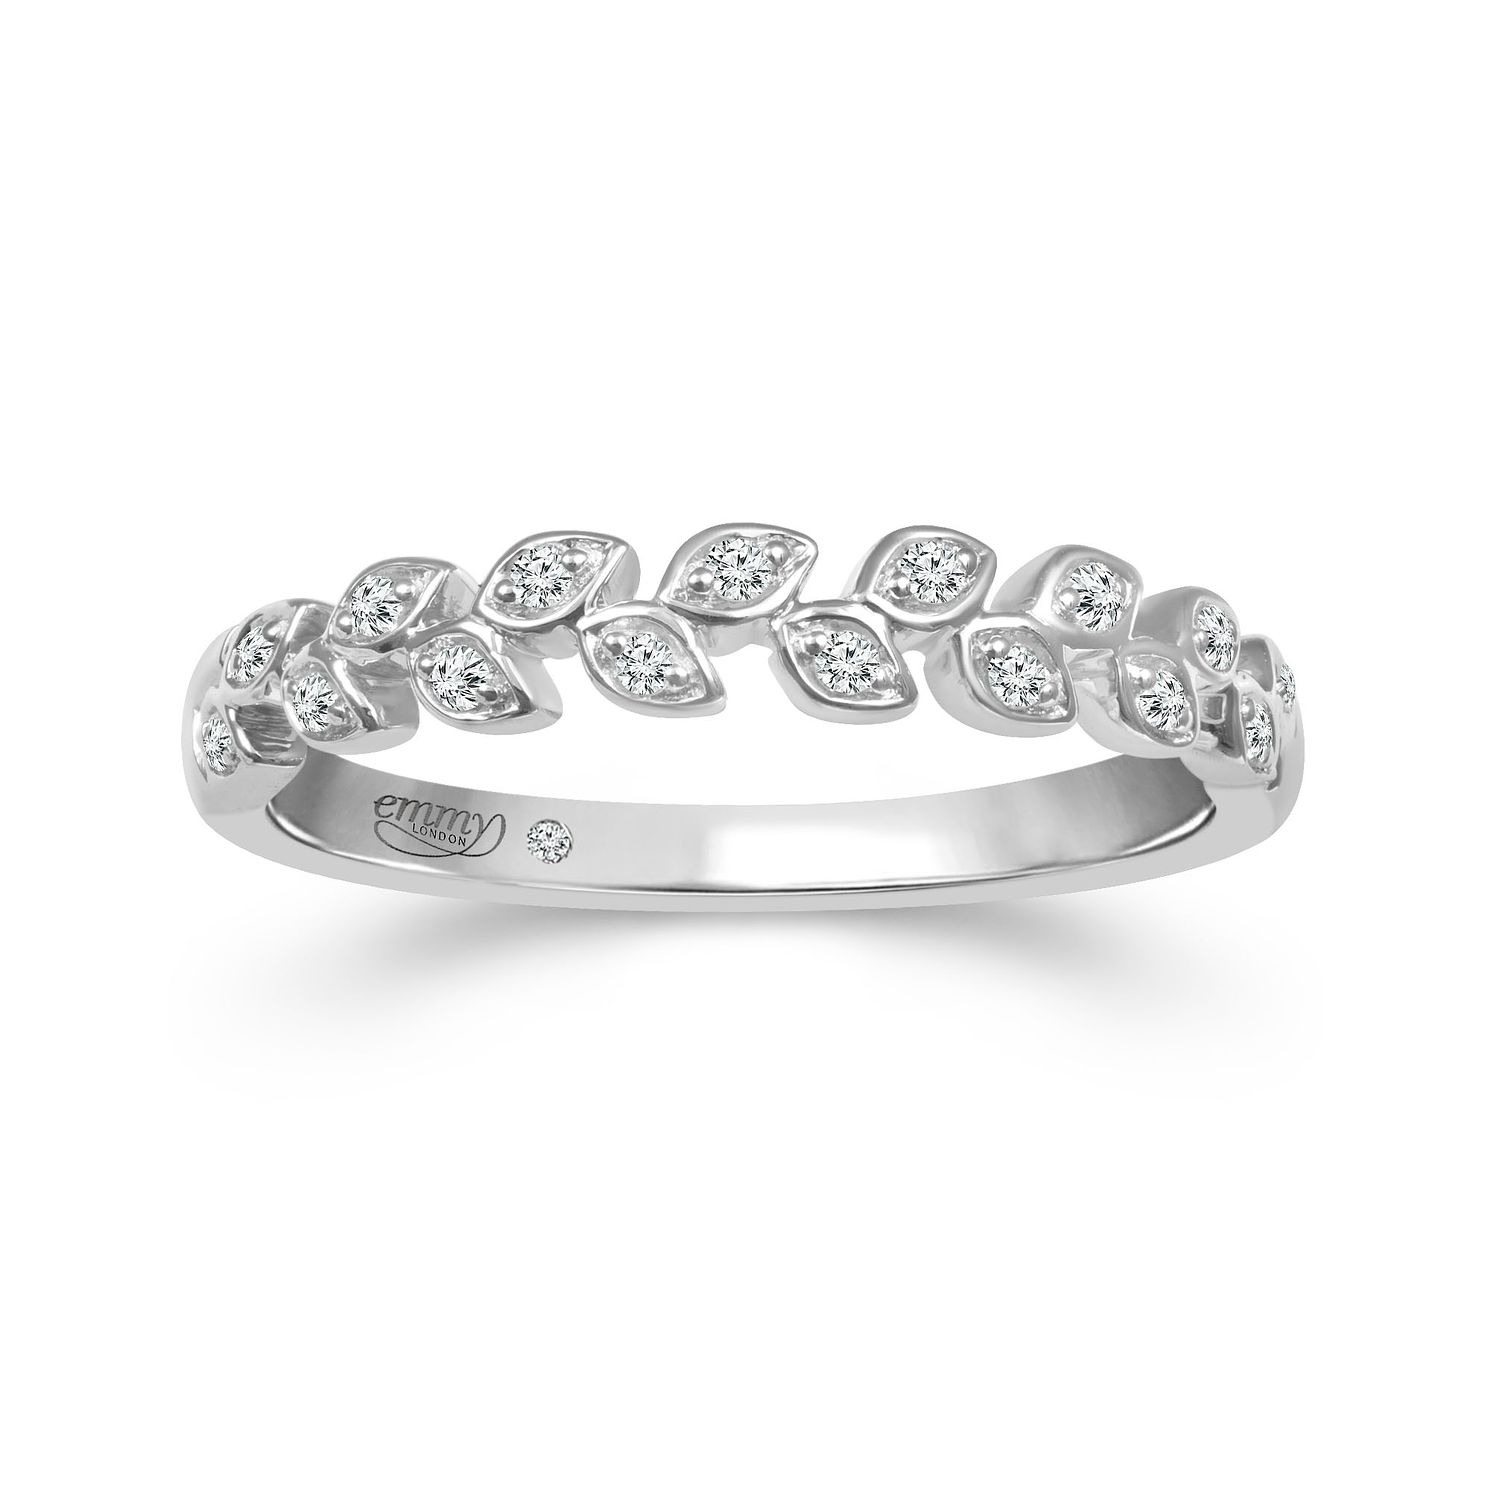 Emmy London Platinum Diamond Leaf Eternity Ring - Product number 6103626